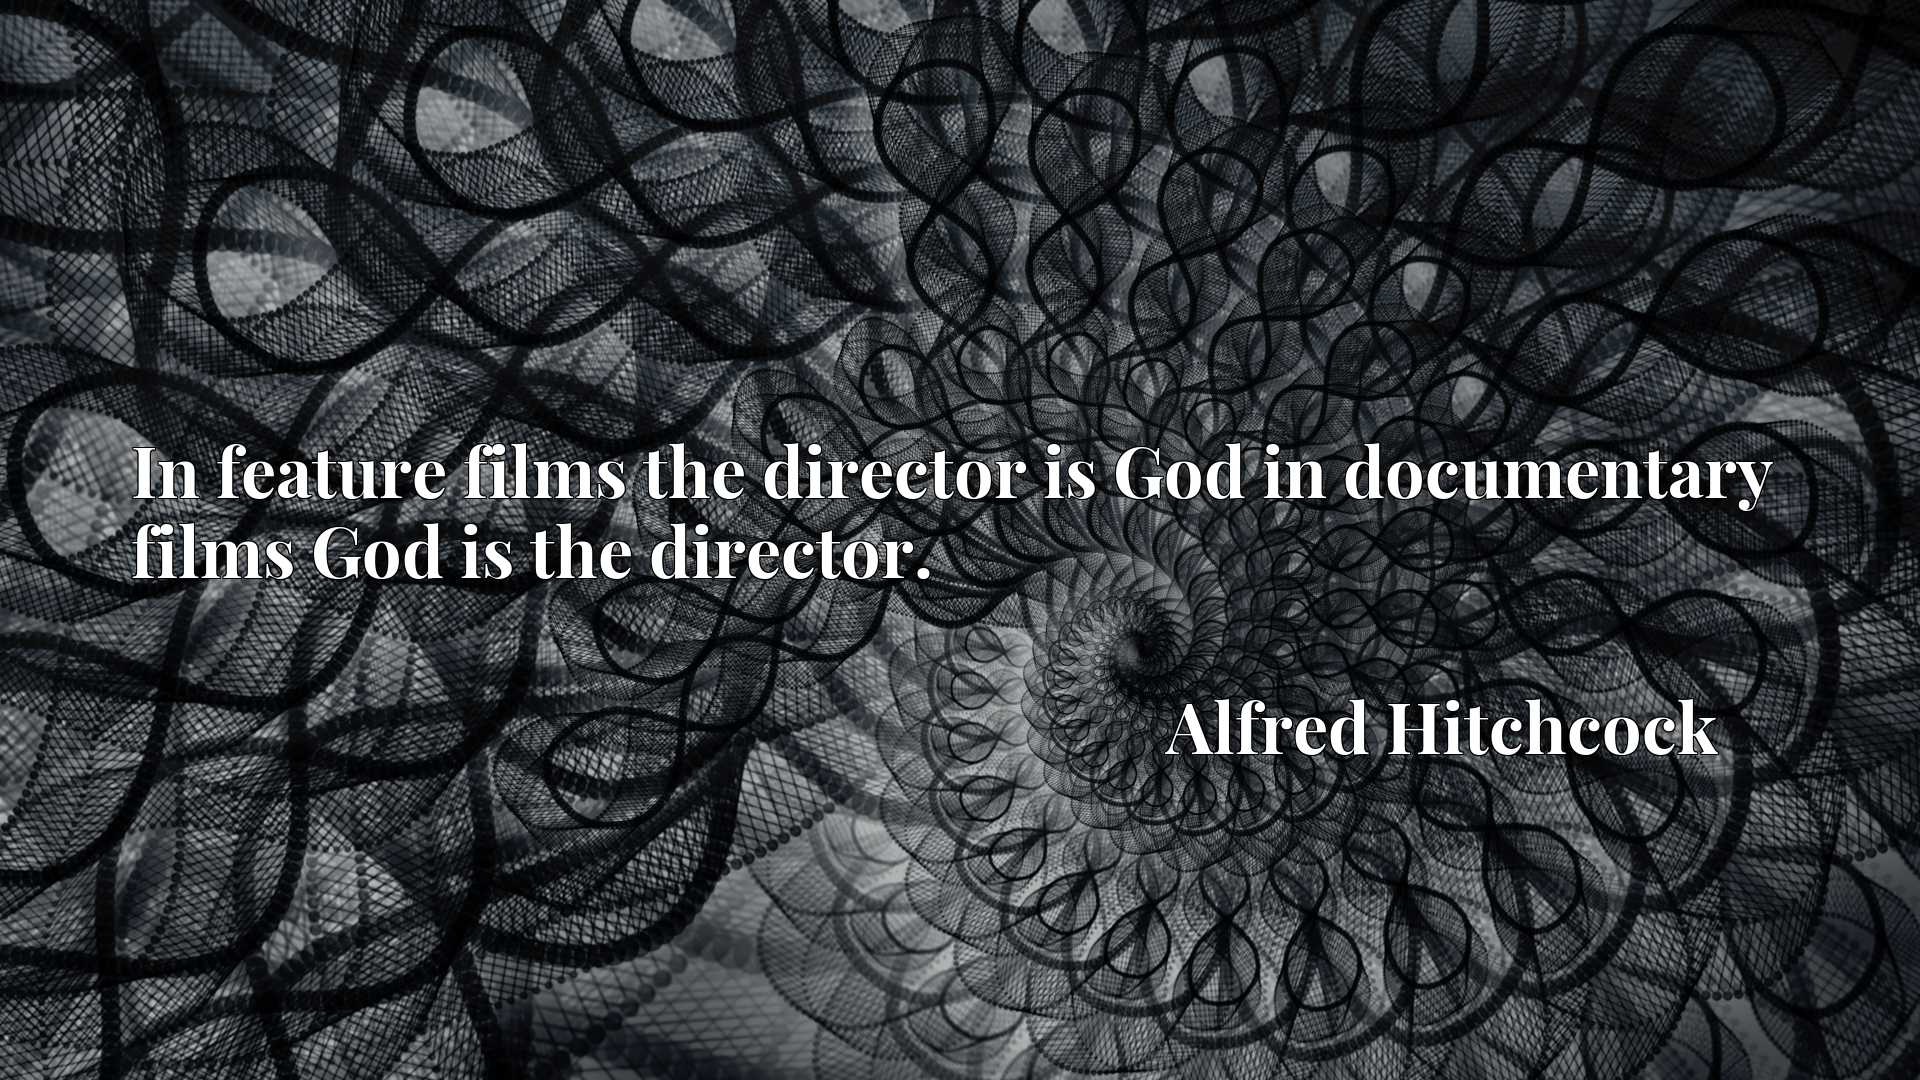 In feature films the director is God in documentary films God is the director.